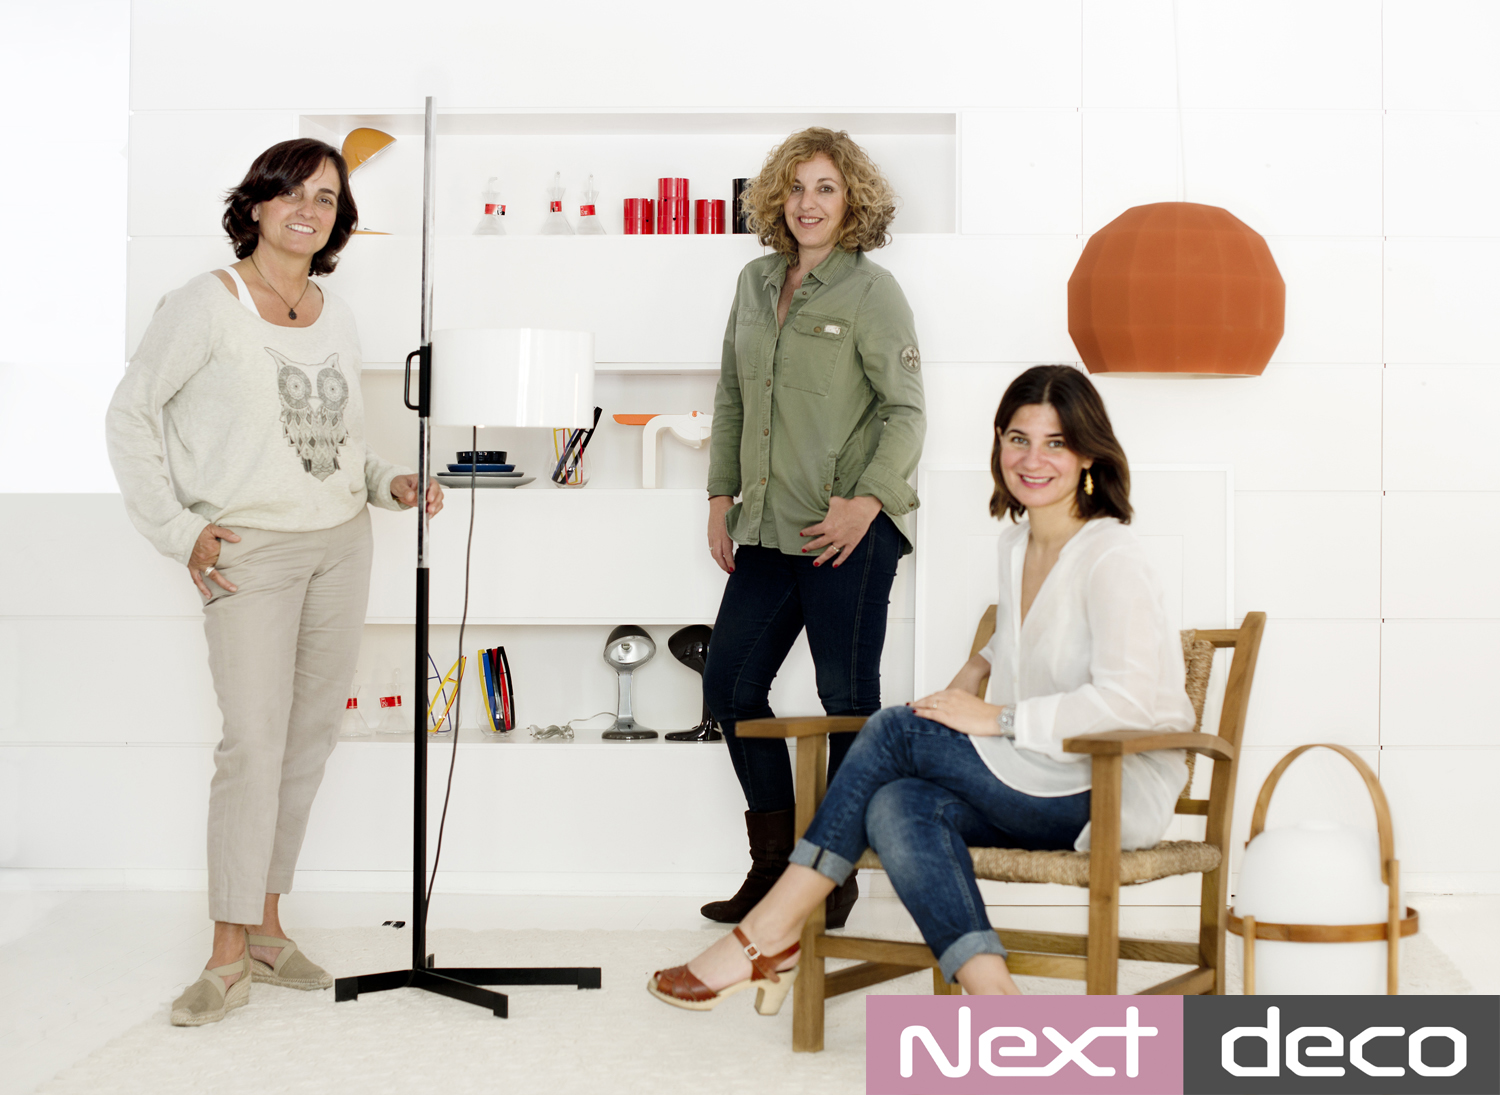 nextdeco-Barcelona-in-design-web-diseno (4) copia